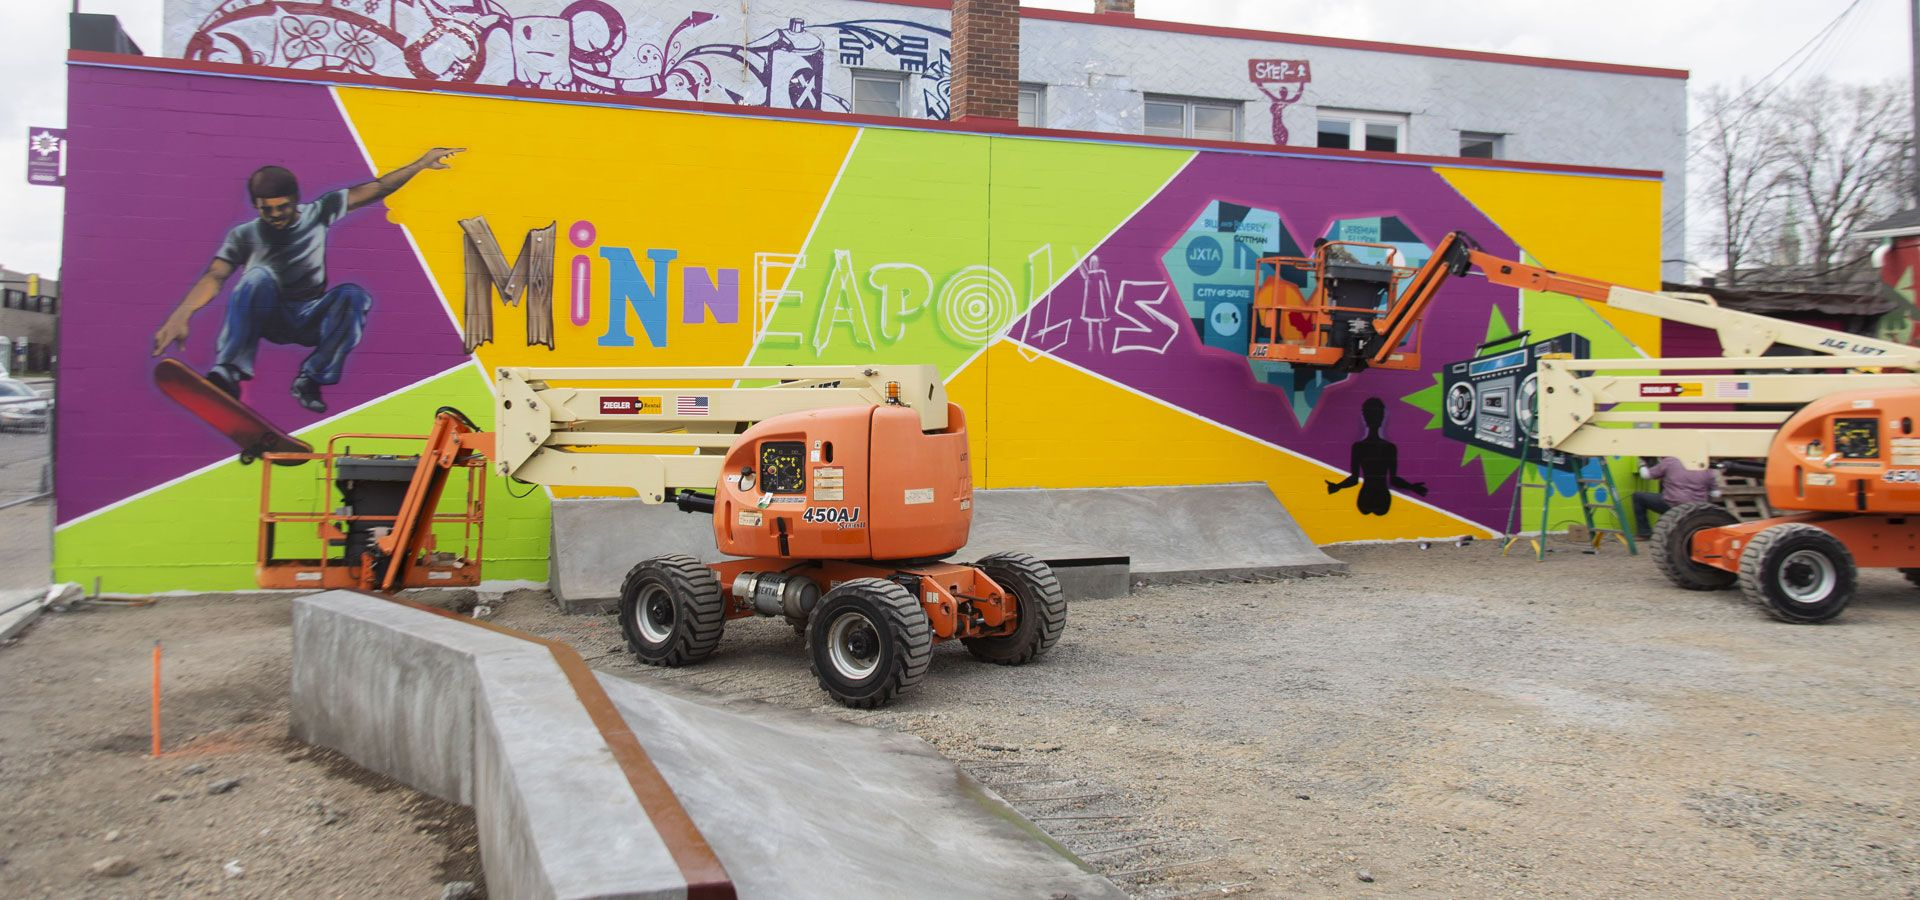 A mural painted in progress